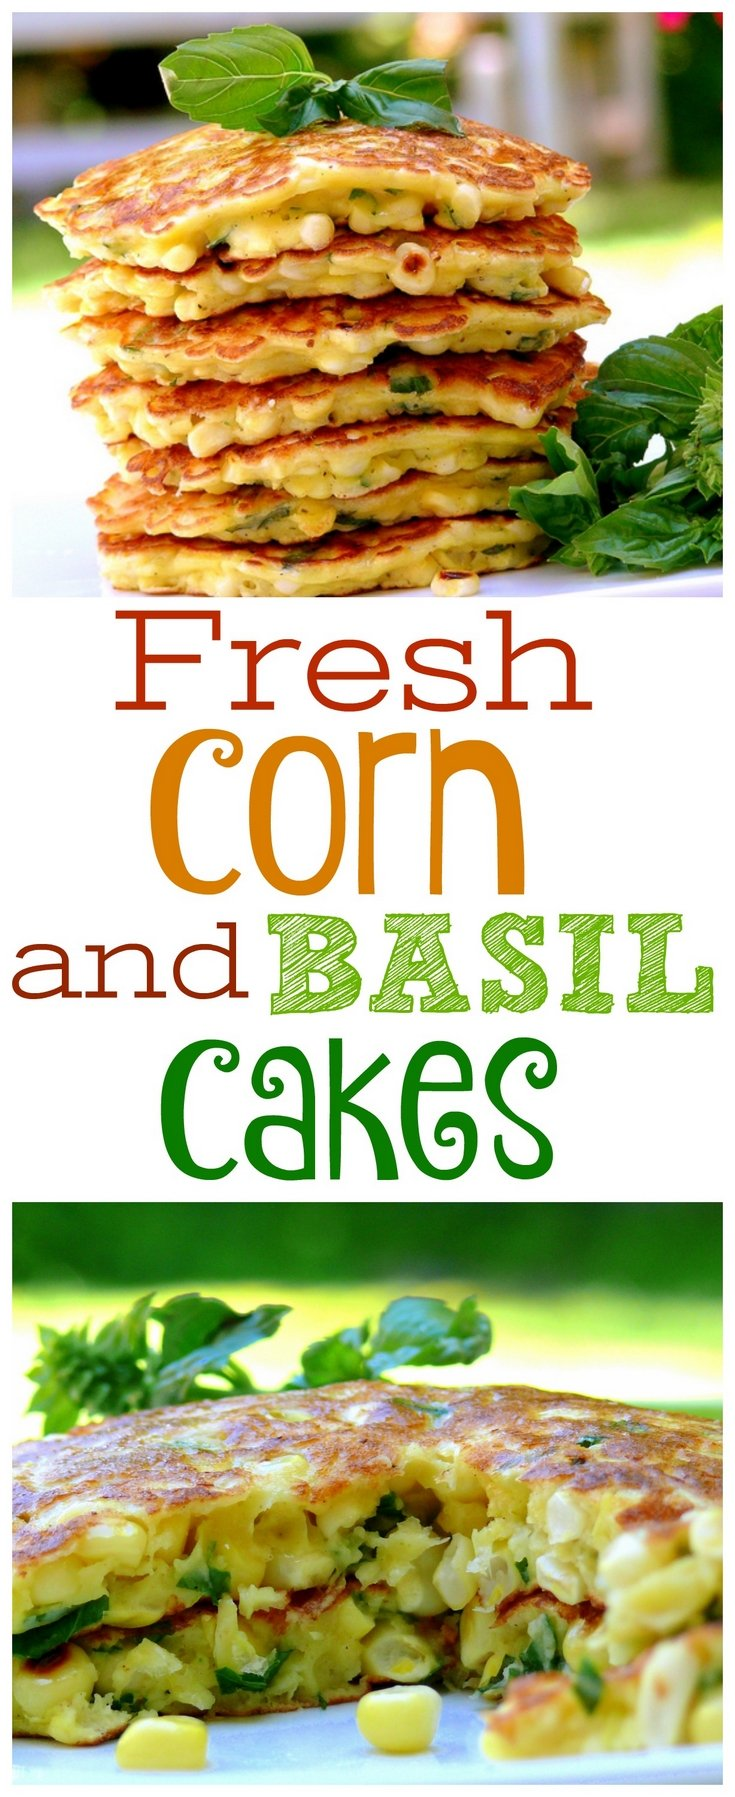 Video + Recipe: What could be better than fresh corn and sweet basil made into the perfect side dish for your next meal. These Corn and Basil Cakes will have you wishing you doubled the recipe, from NoblePig.com.